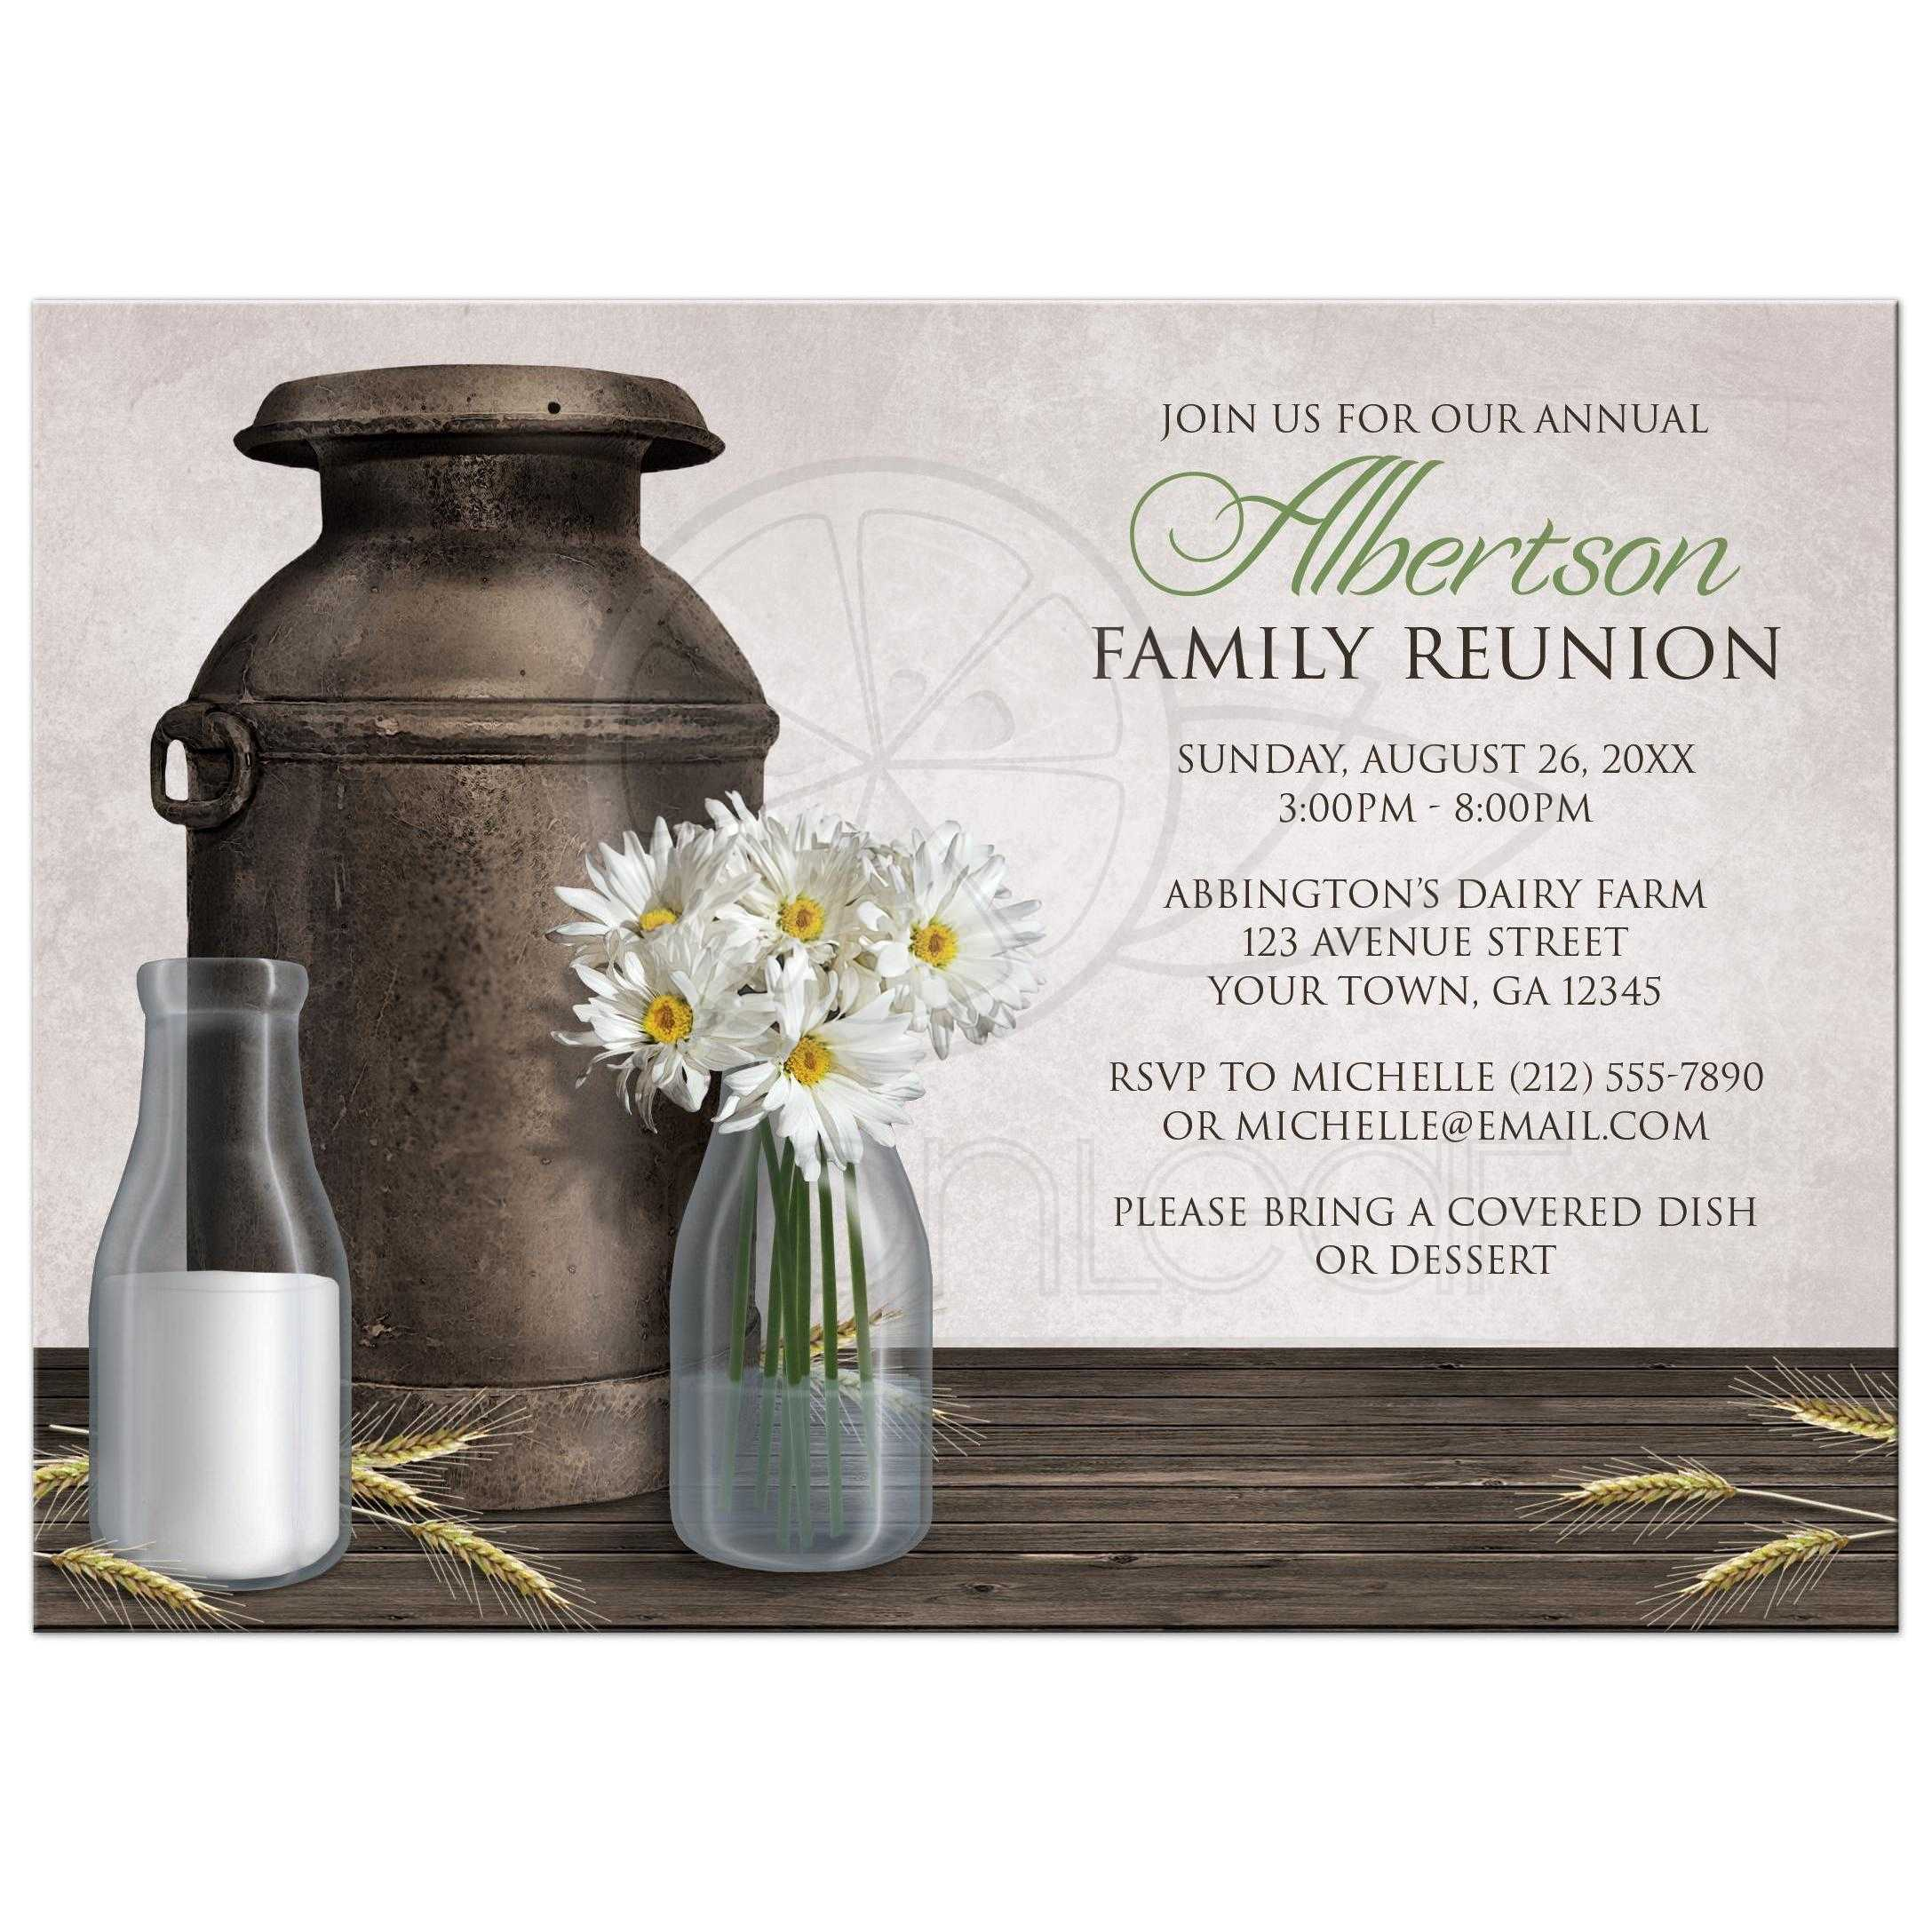 Family Reunion Invitations   Rustic Dairy Farm  Invitations For Family Reunion